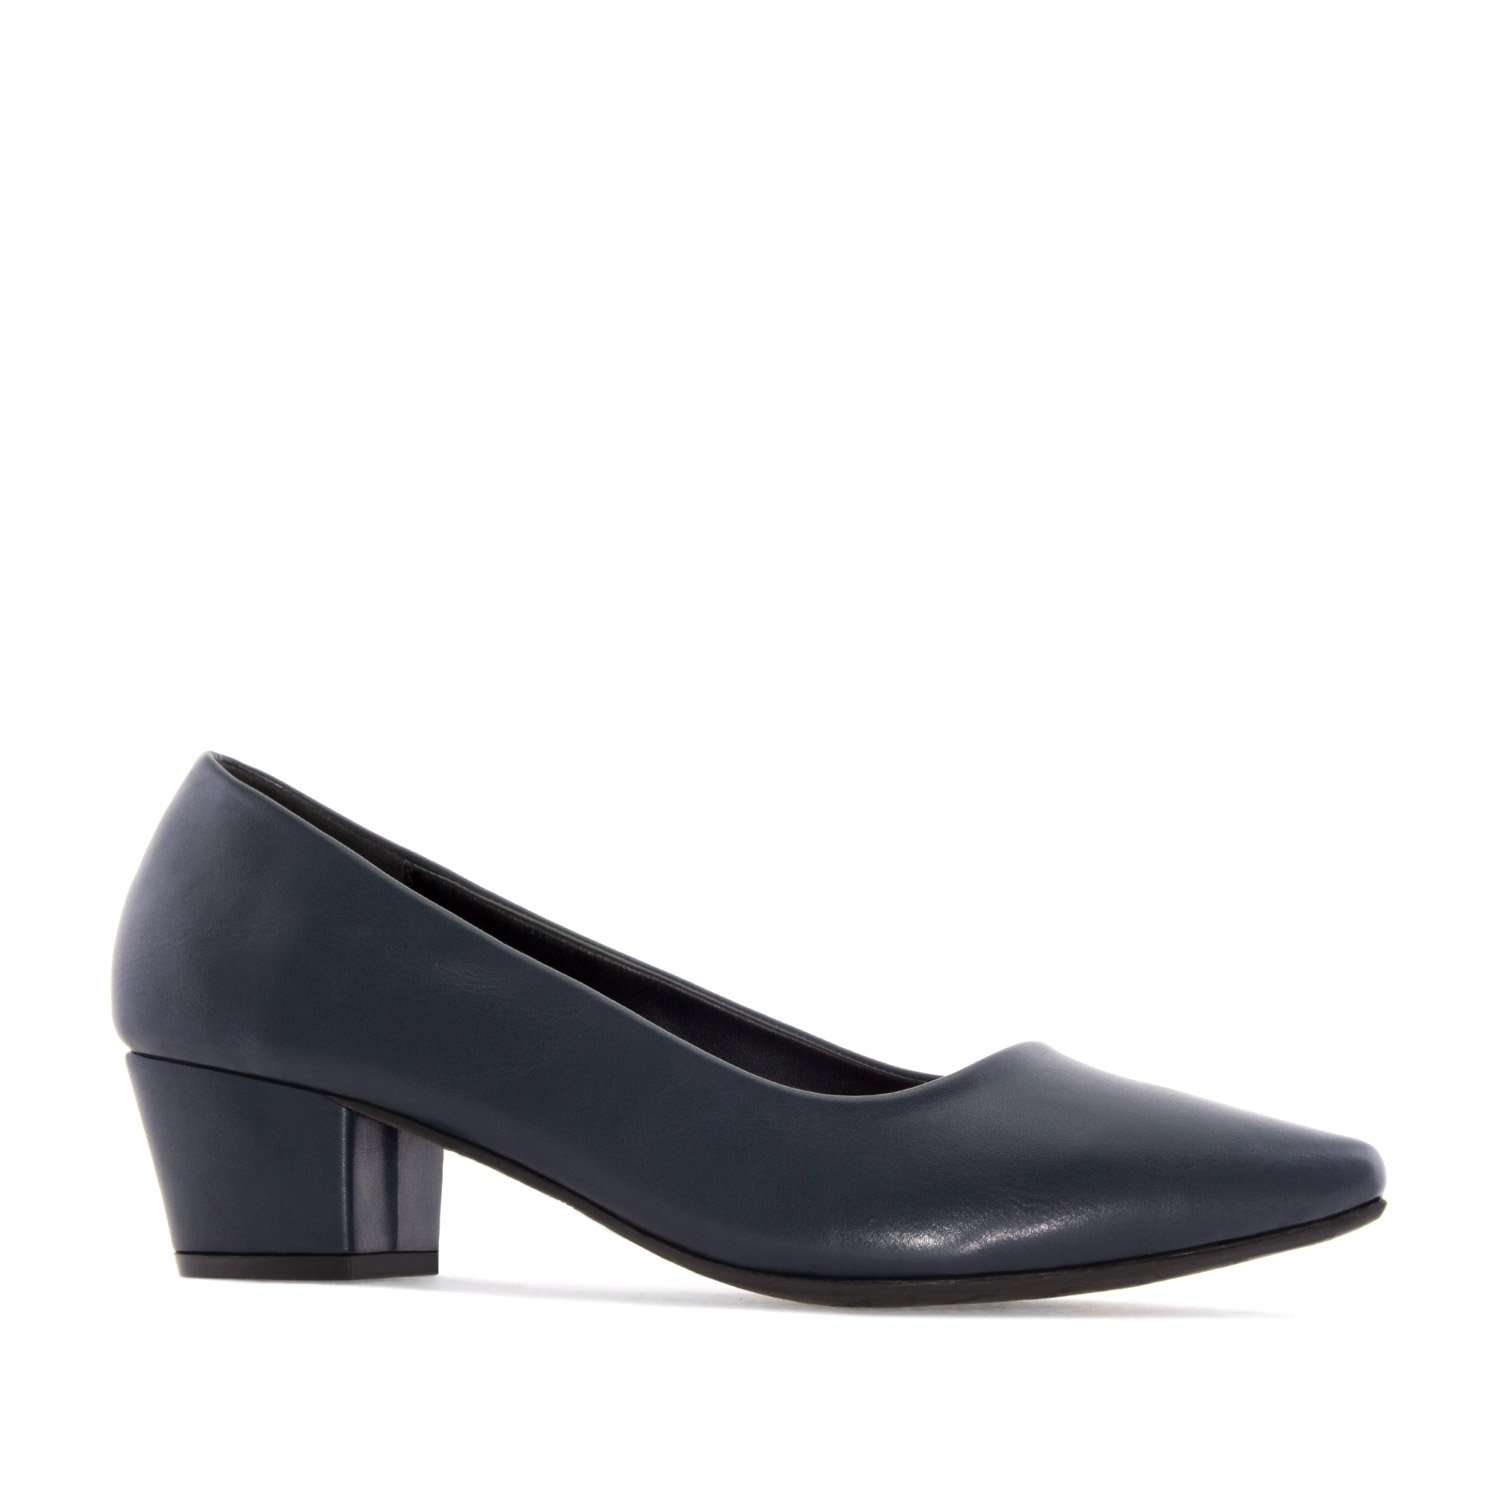 Andres Machado AM5212.Pointed Toe Shoes in Faux Leather.Women's Petite&Large Szs:US 2 to 5 -US 11.5 to 13/EU 32 to 35 -EU 43 to 45